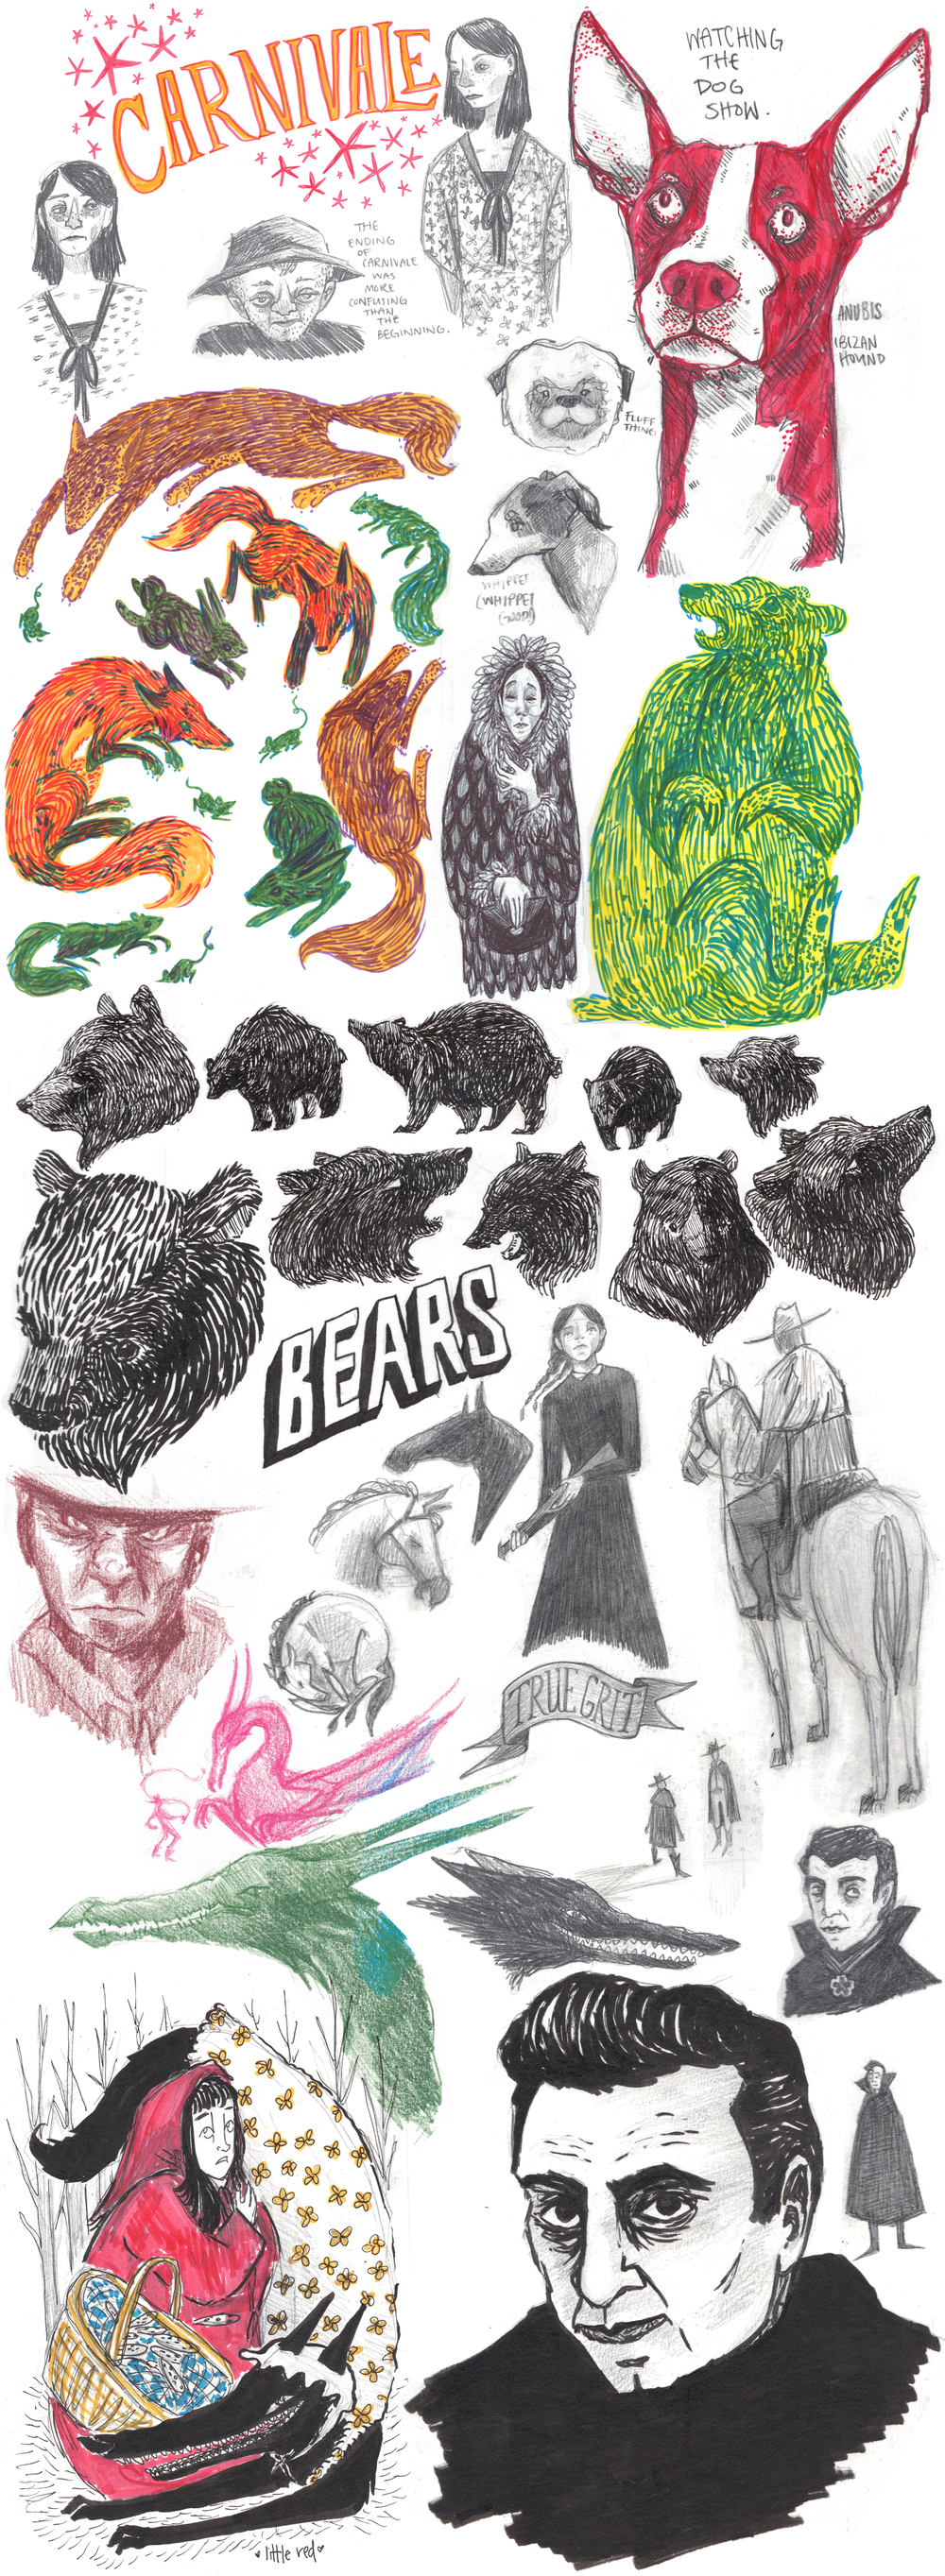 ellienorton_winterspring2014sketchbook